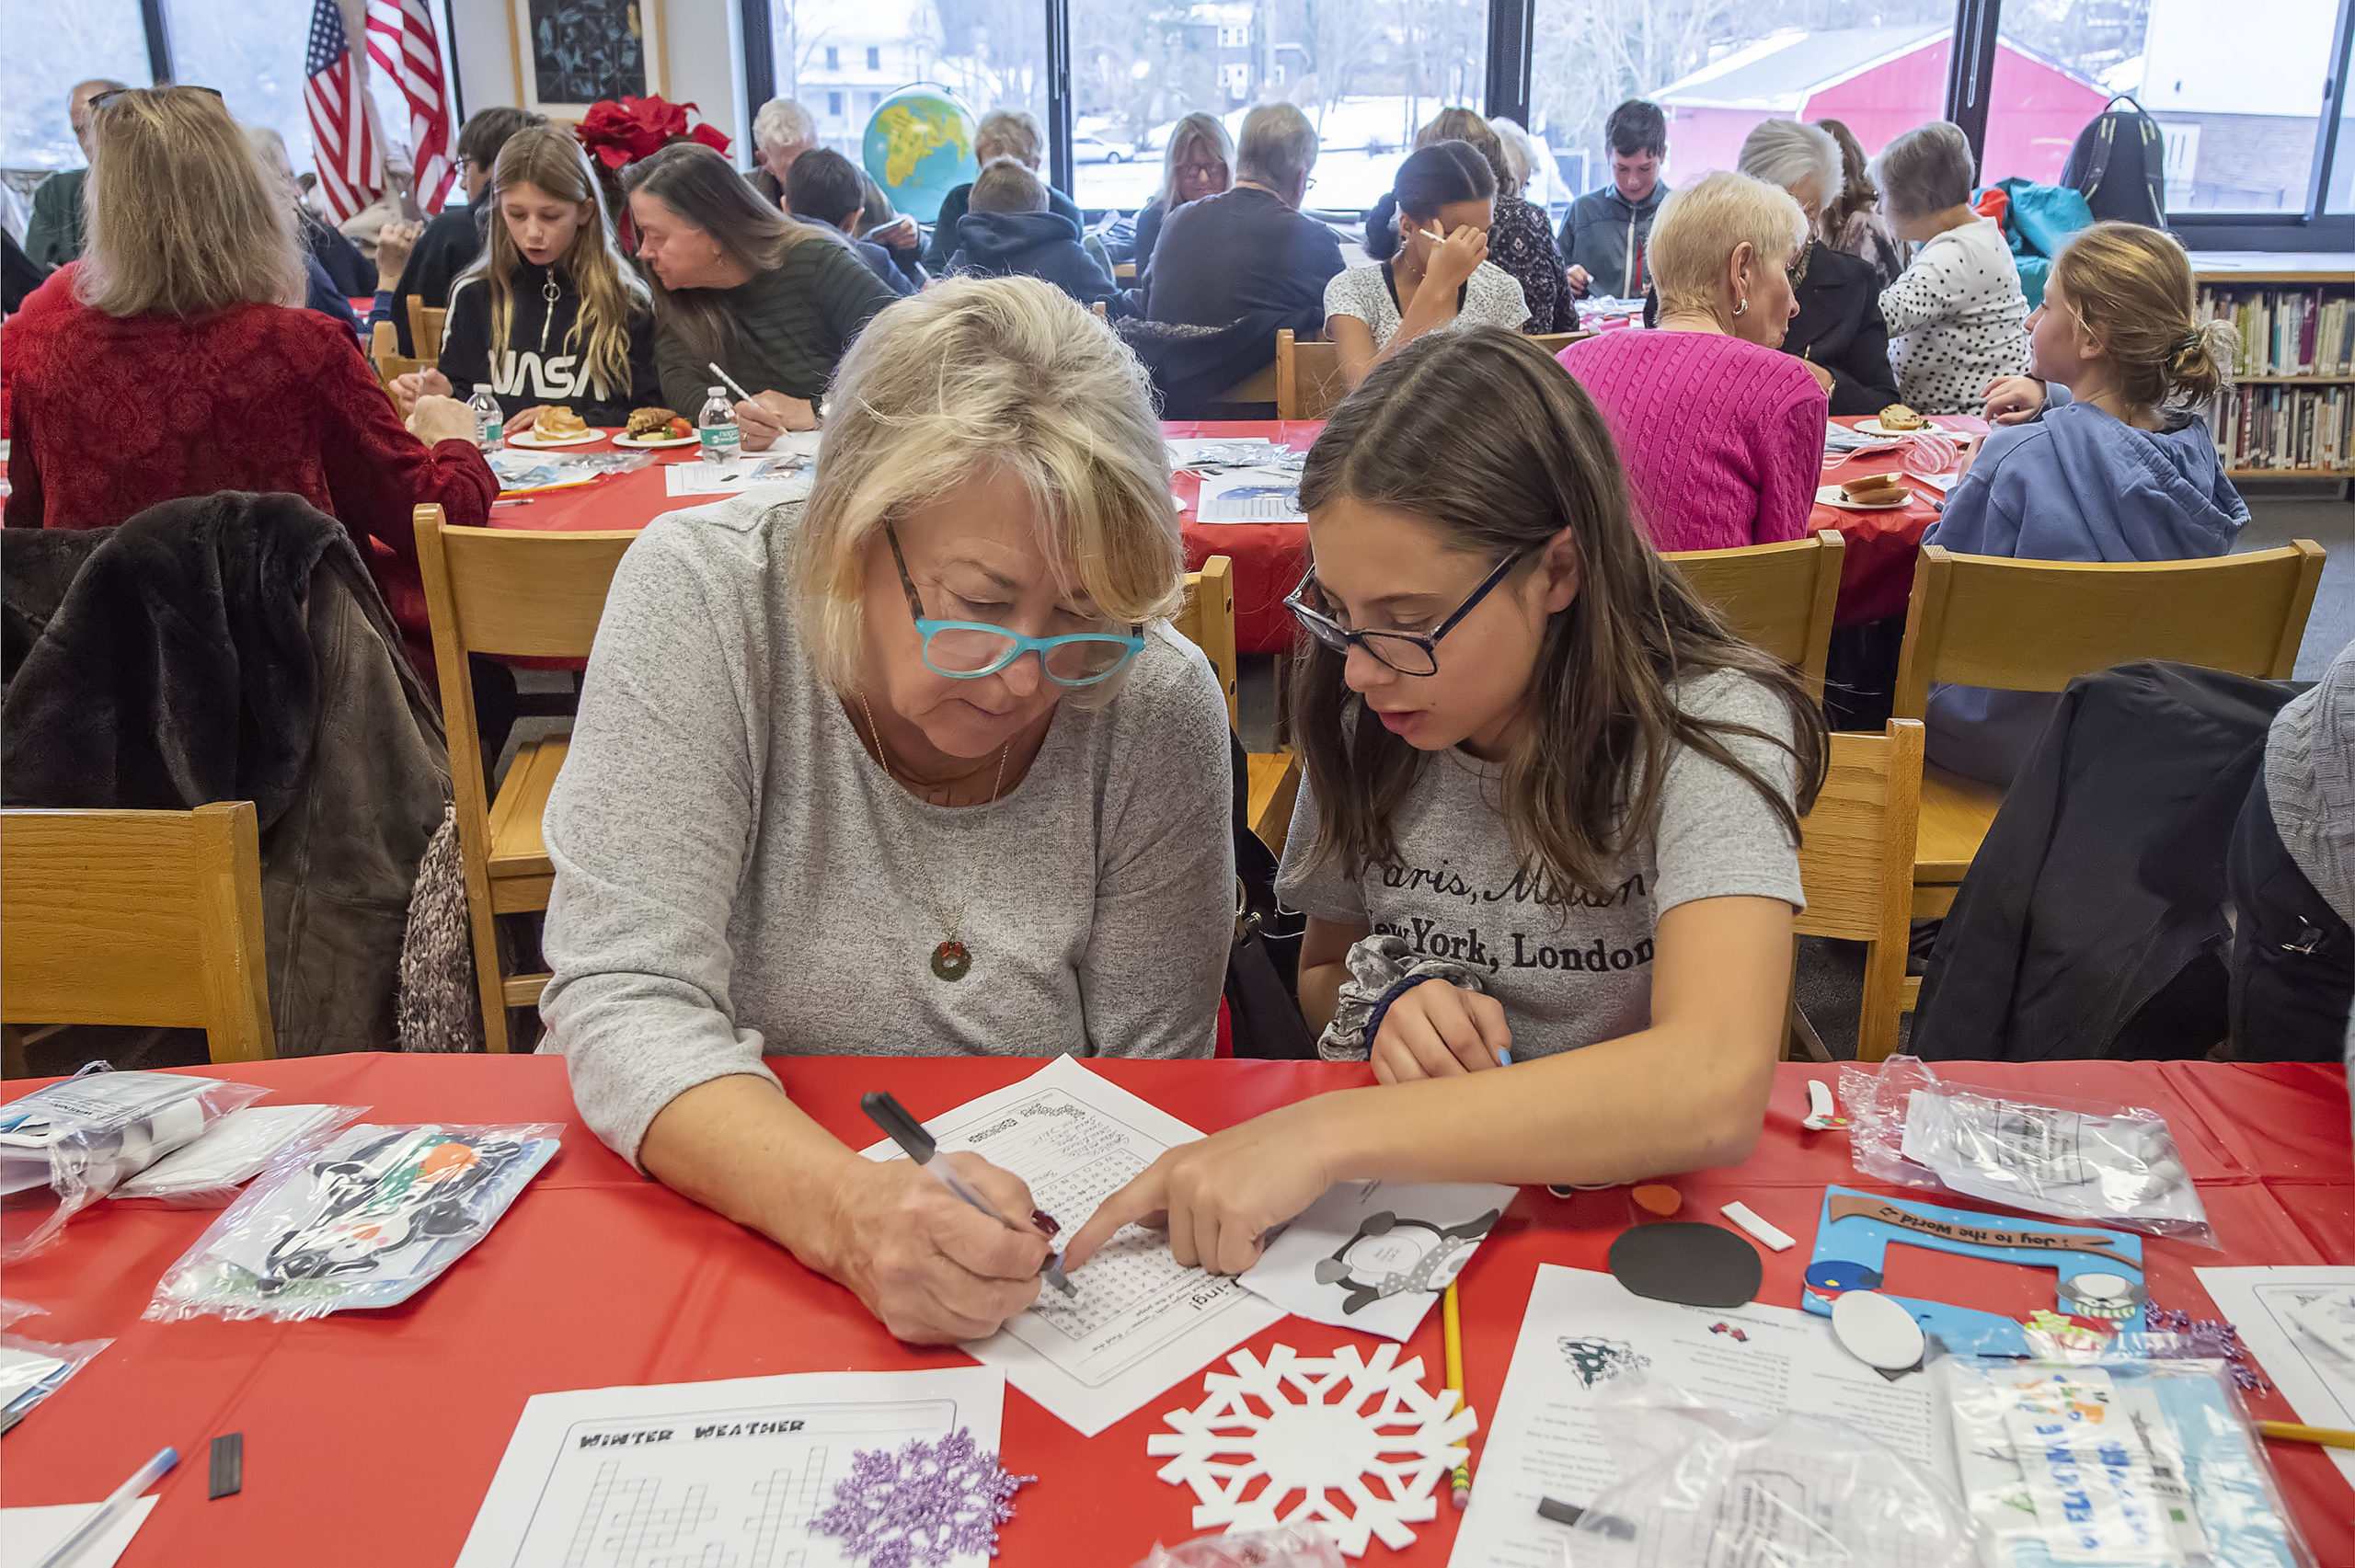 Hailey Bierfriend works on a word puzzle with her Step-Grandmother Nancy Buckley during the Pierson Middle School Snowflake Tea that was held in the Pierson High School library on Friday , December 13.     MICHAEL HELLER PHOTO